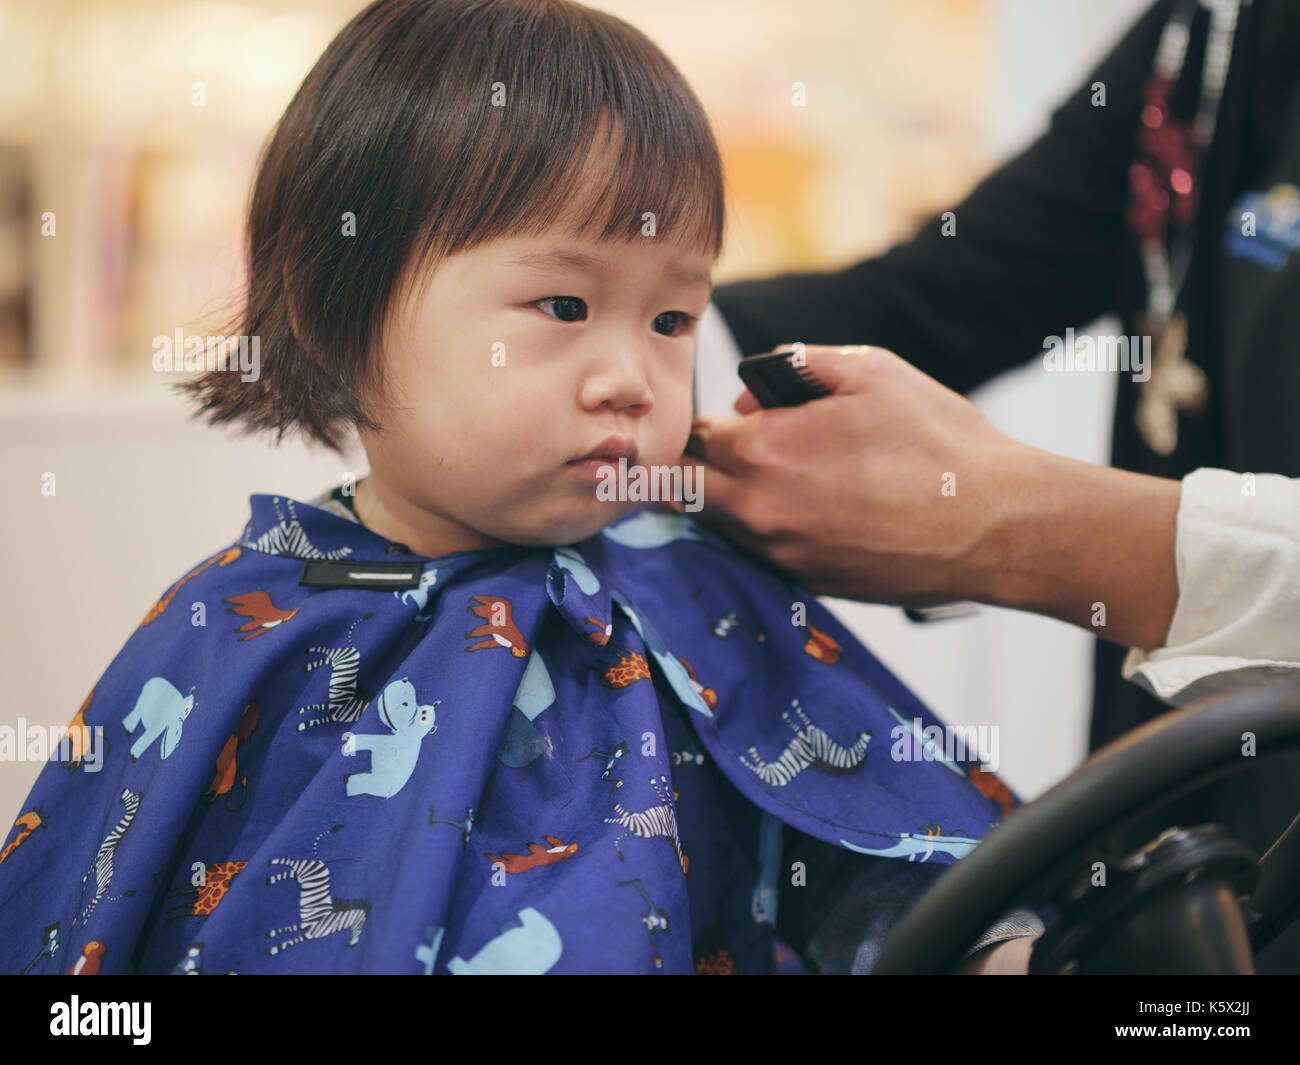 Baby Hair Cut Stock Photos Baby Hair Cut Stock Images Alamy